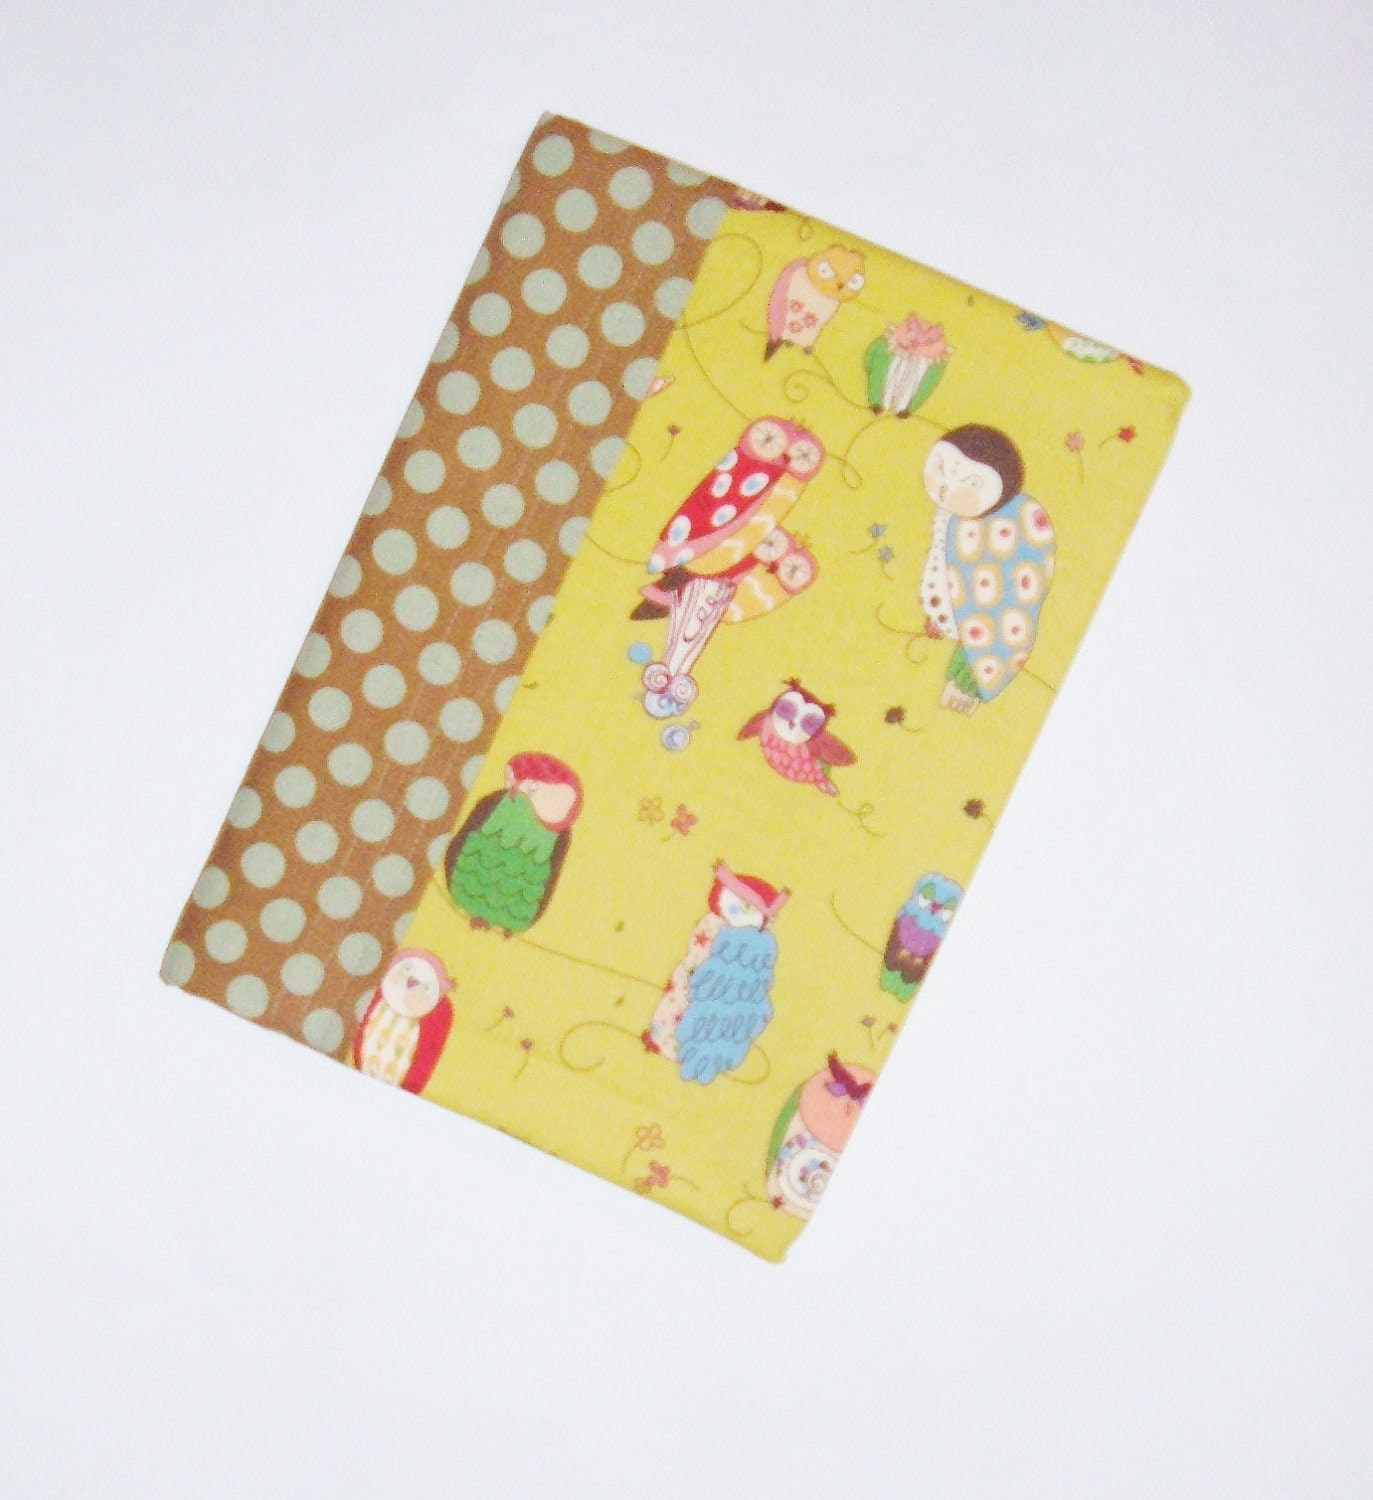 Journal - Fabric Covered Notebook  - Owls - Diary - Back to School - pasqueflower